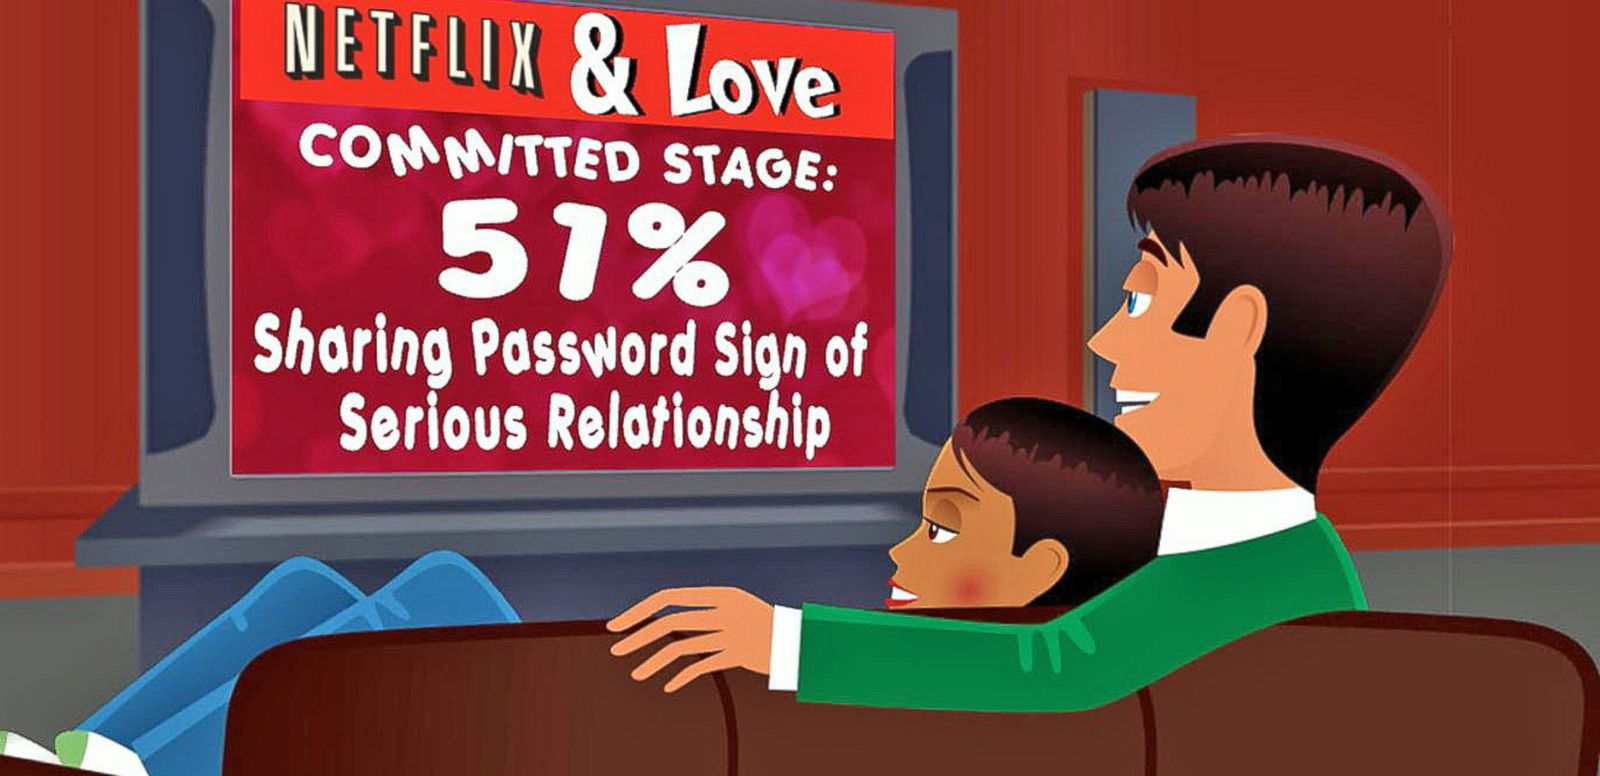 VIDEO: Netflix Could Be Big Asset for Your Online Dating Profile